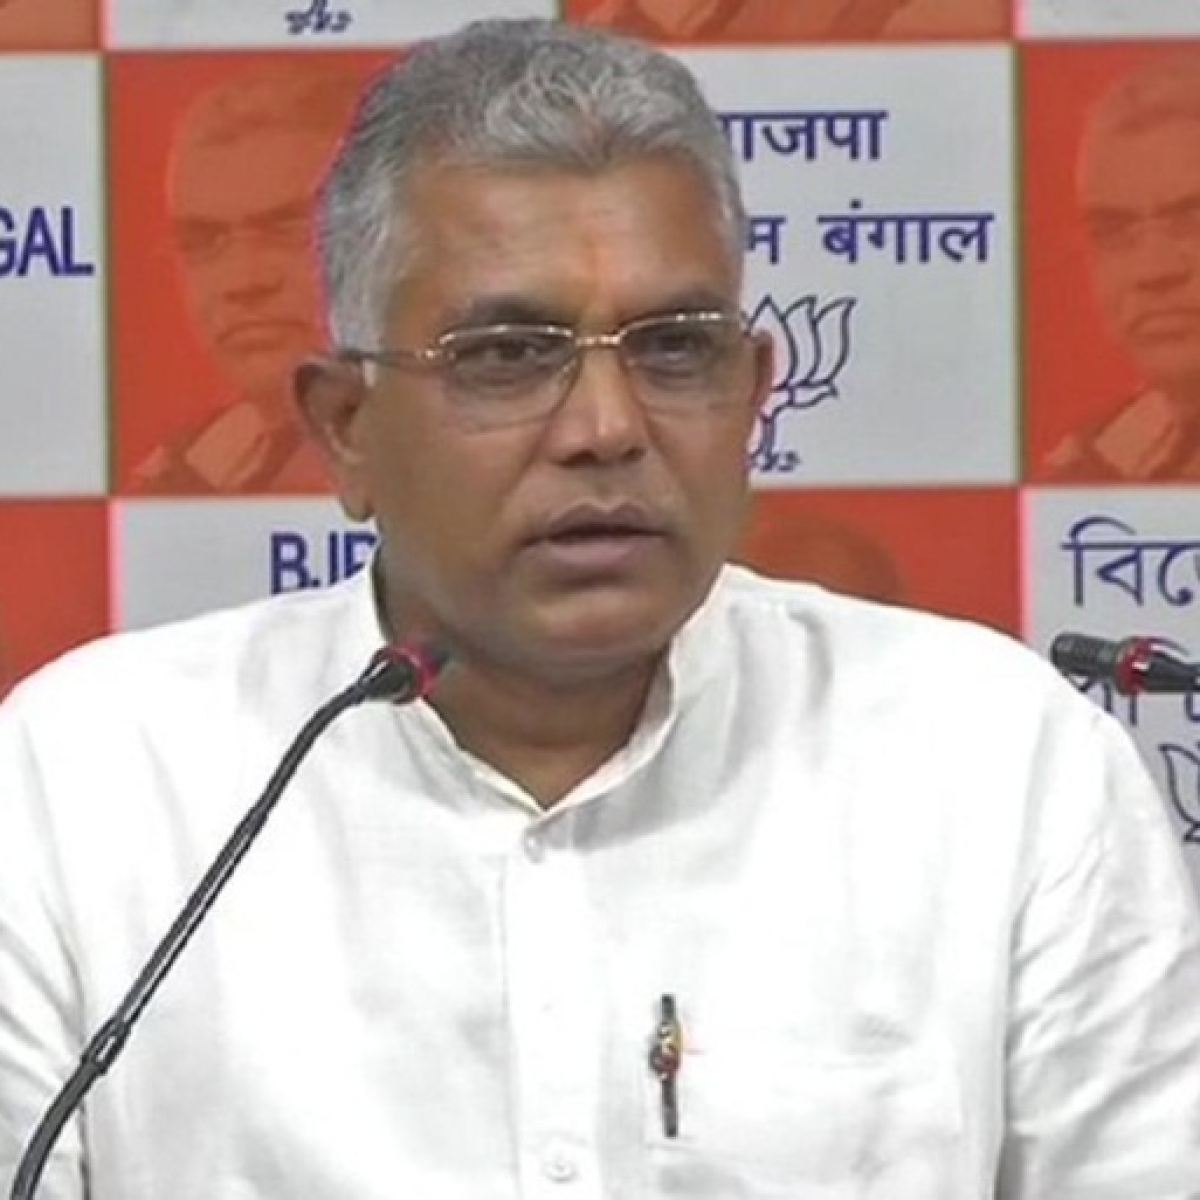 'It is still to be tested whether it is blood or some paint on JNU student leader's head': West Bengal BJP chief Dilip Ghosh